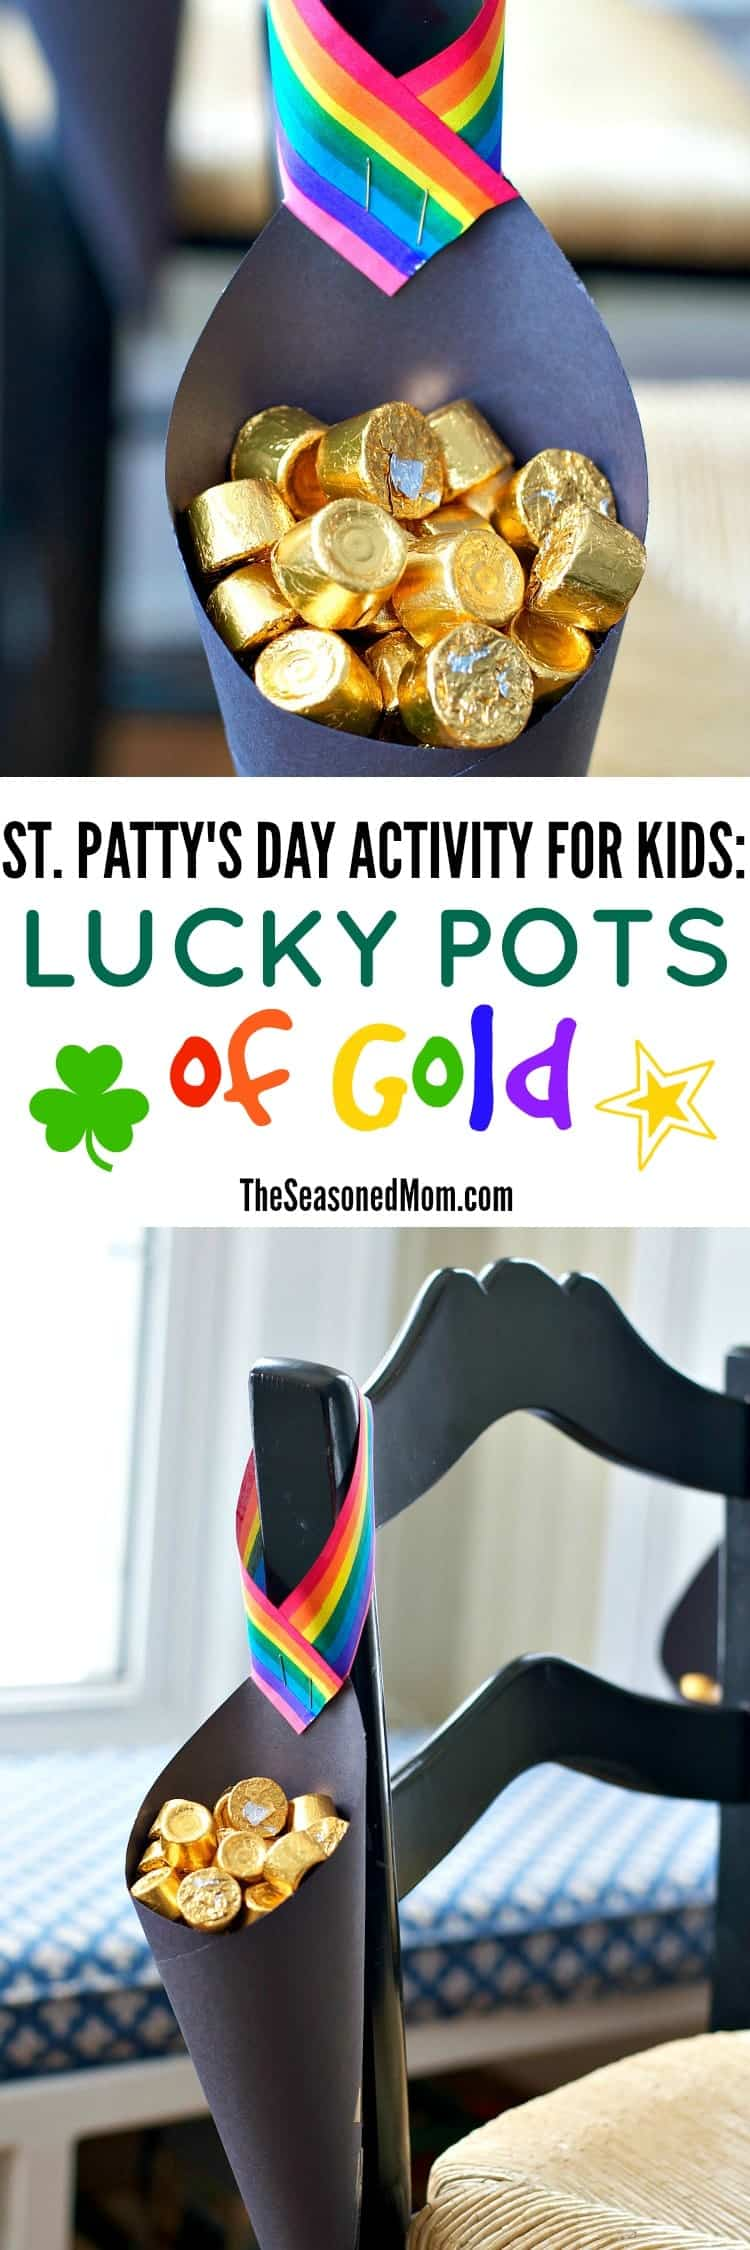 "Try this easy St. Patrick's Day Activity for Kids: Lucky Pots of Gold! Hang them on a chair or doorknob and let the leprechauns ""fill"" them overnight!"